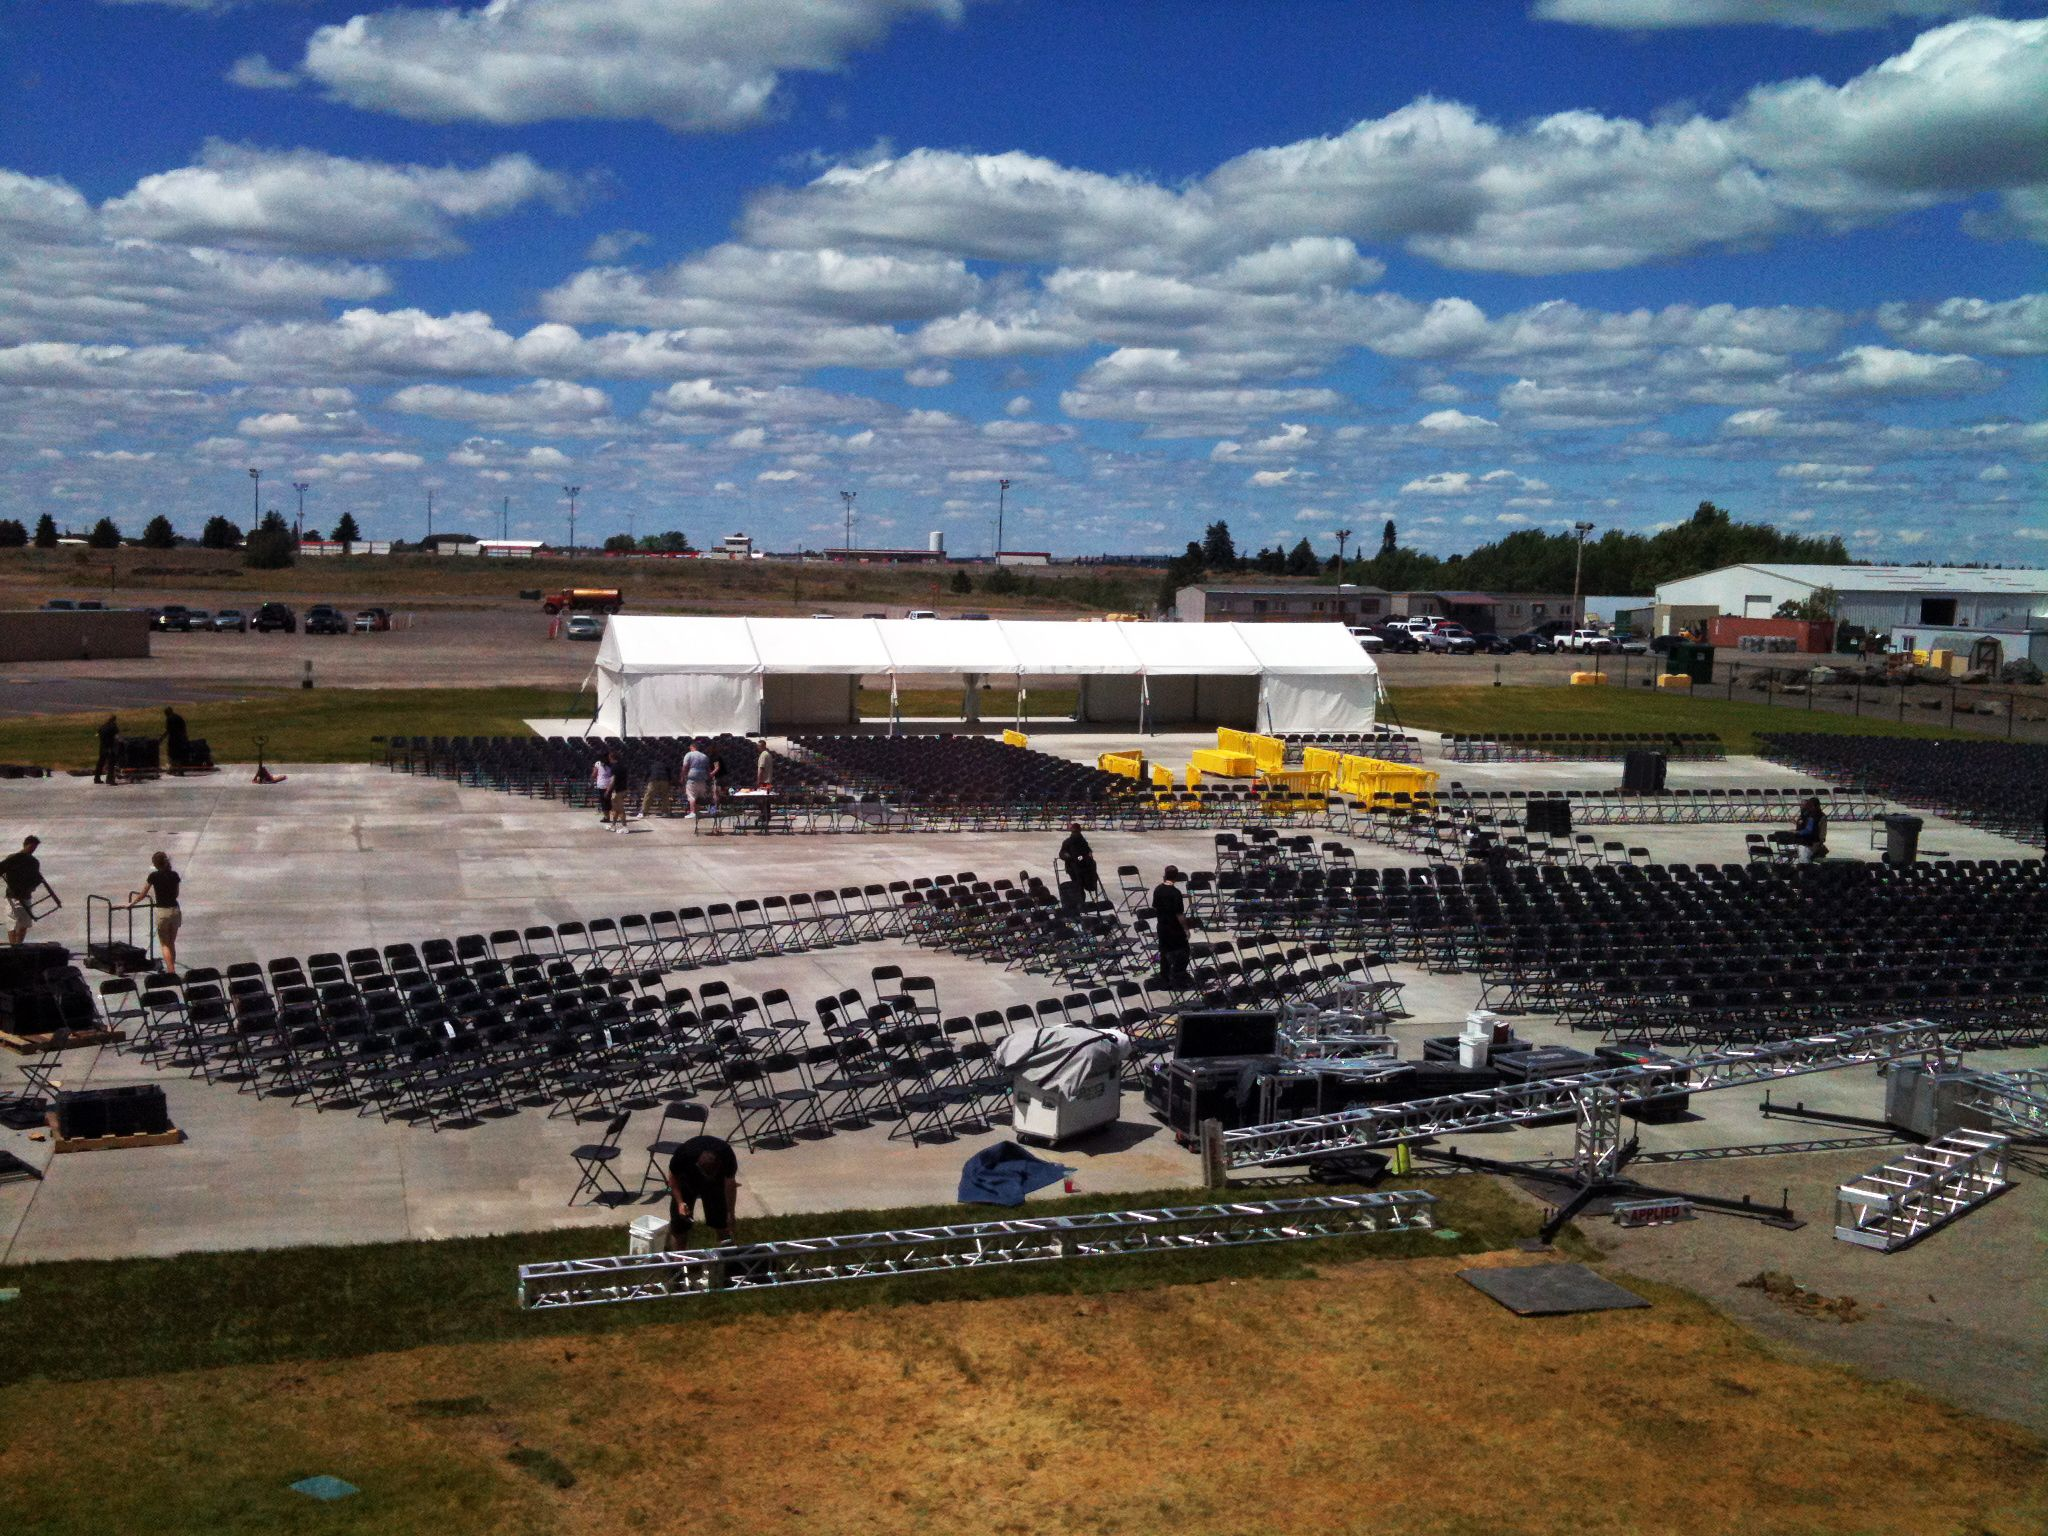 The Pepsi Outdoor Summer Concert Venue is ing along